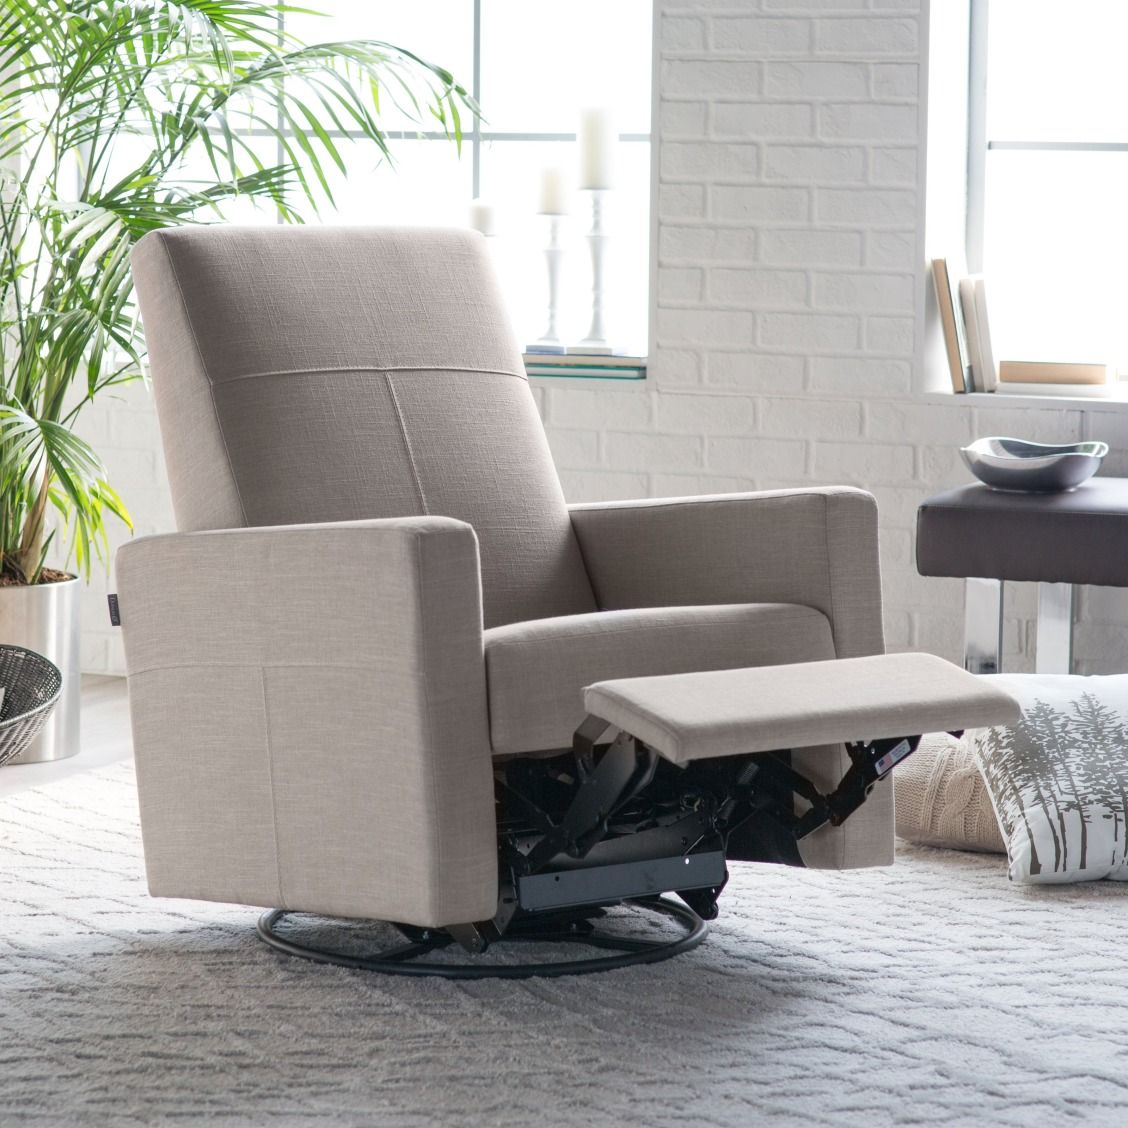 Dutailier Minho Reclining Glider With Built In Footrest Gliders